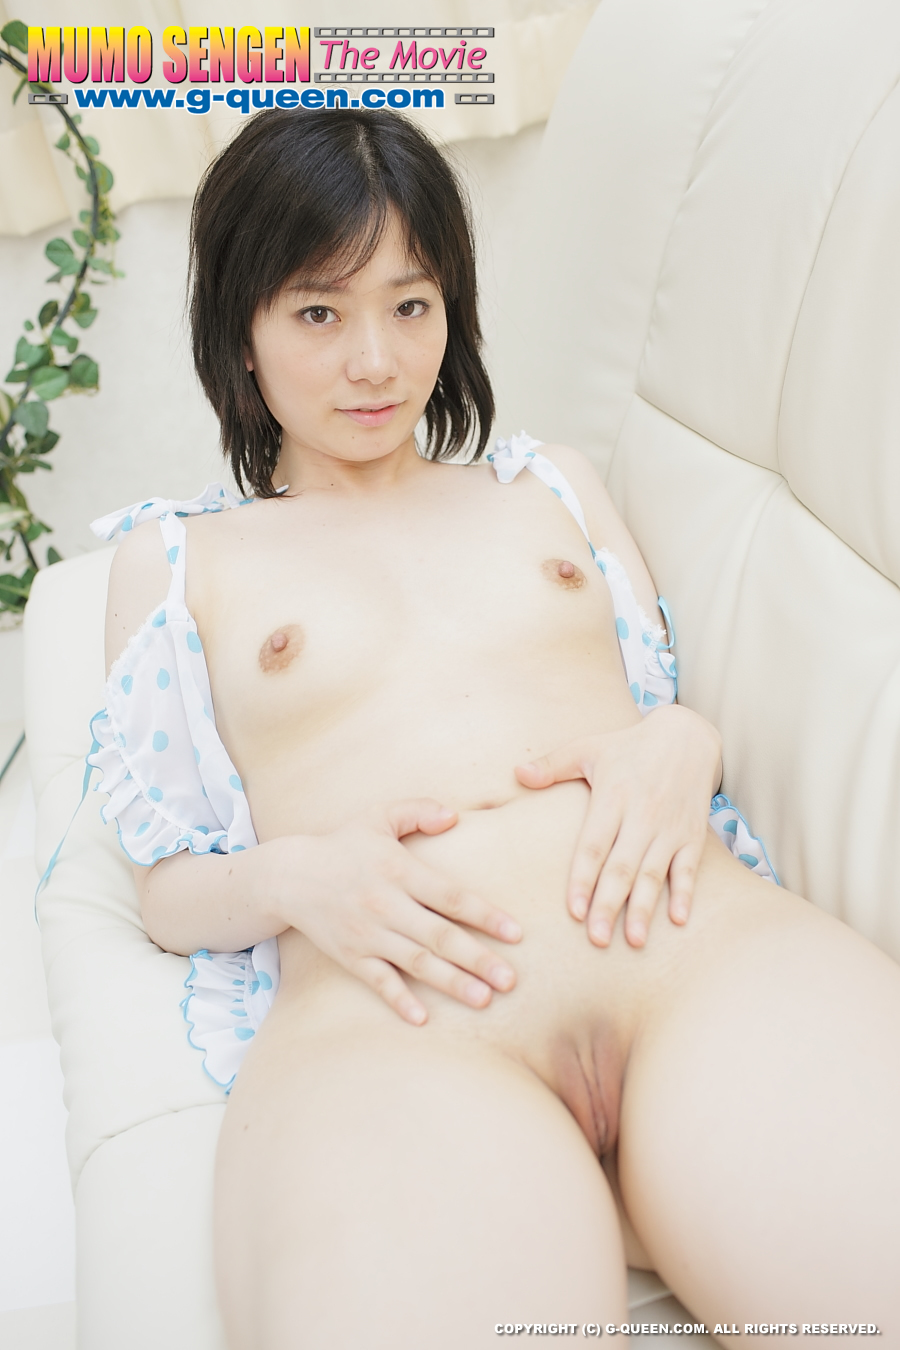 japon-porn-model-girls-ffm-gallery-sex